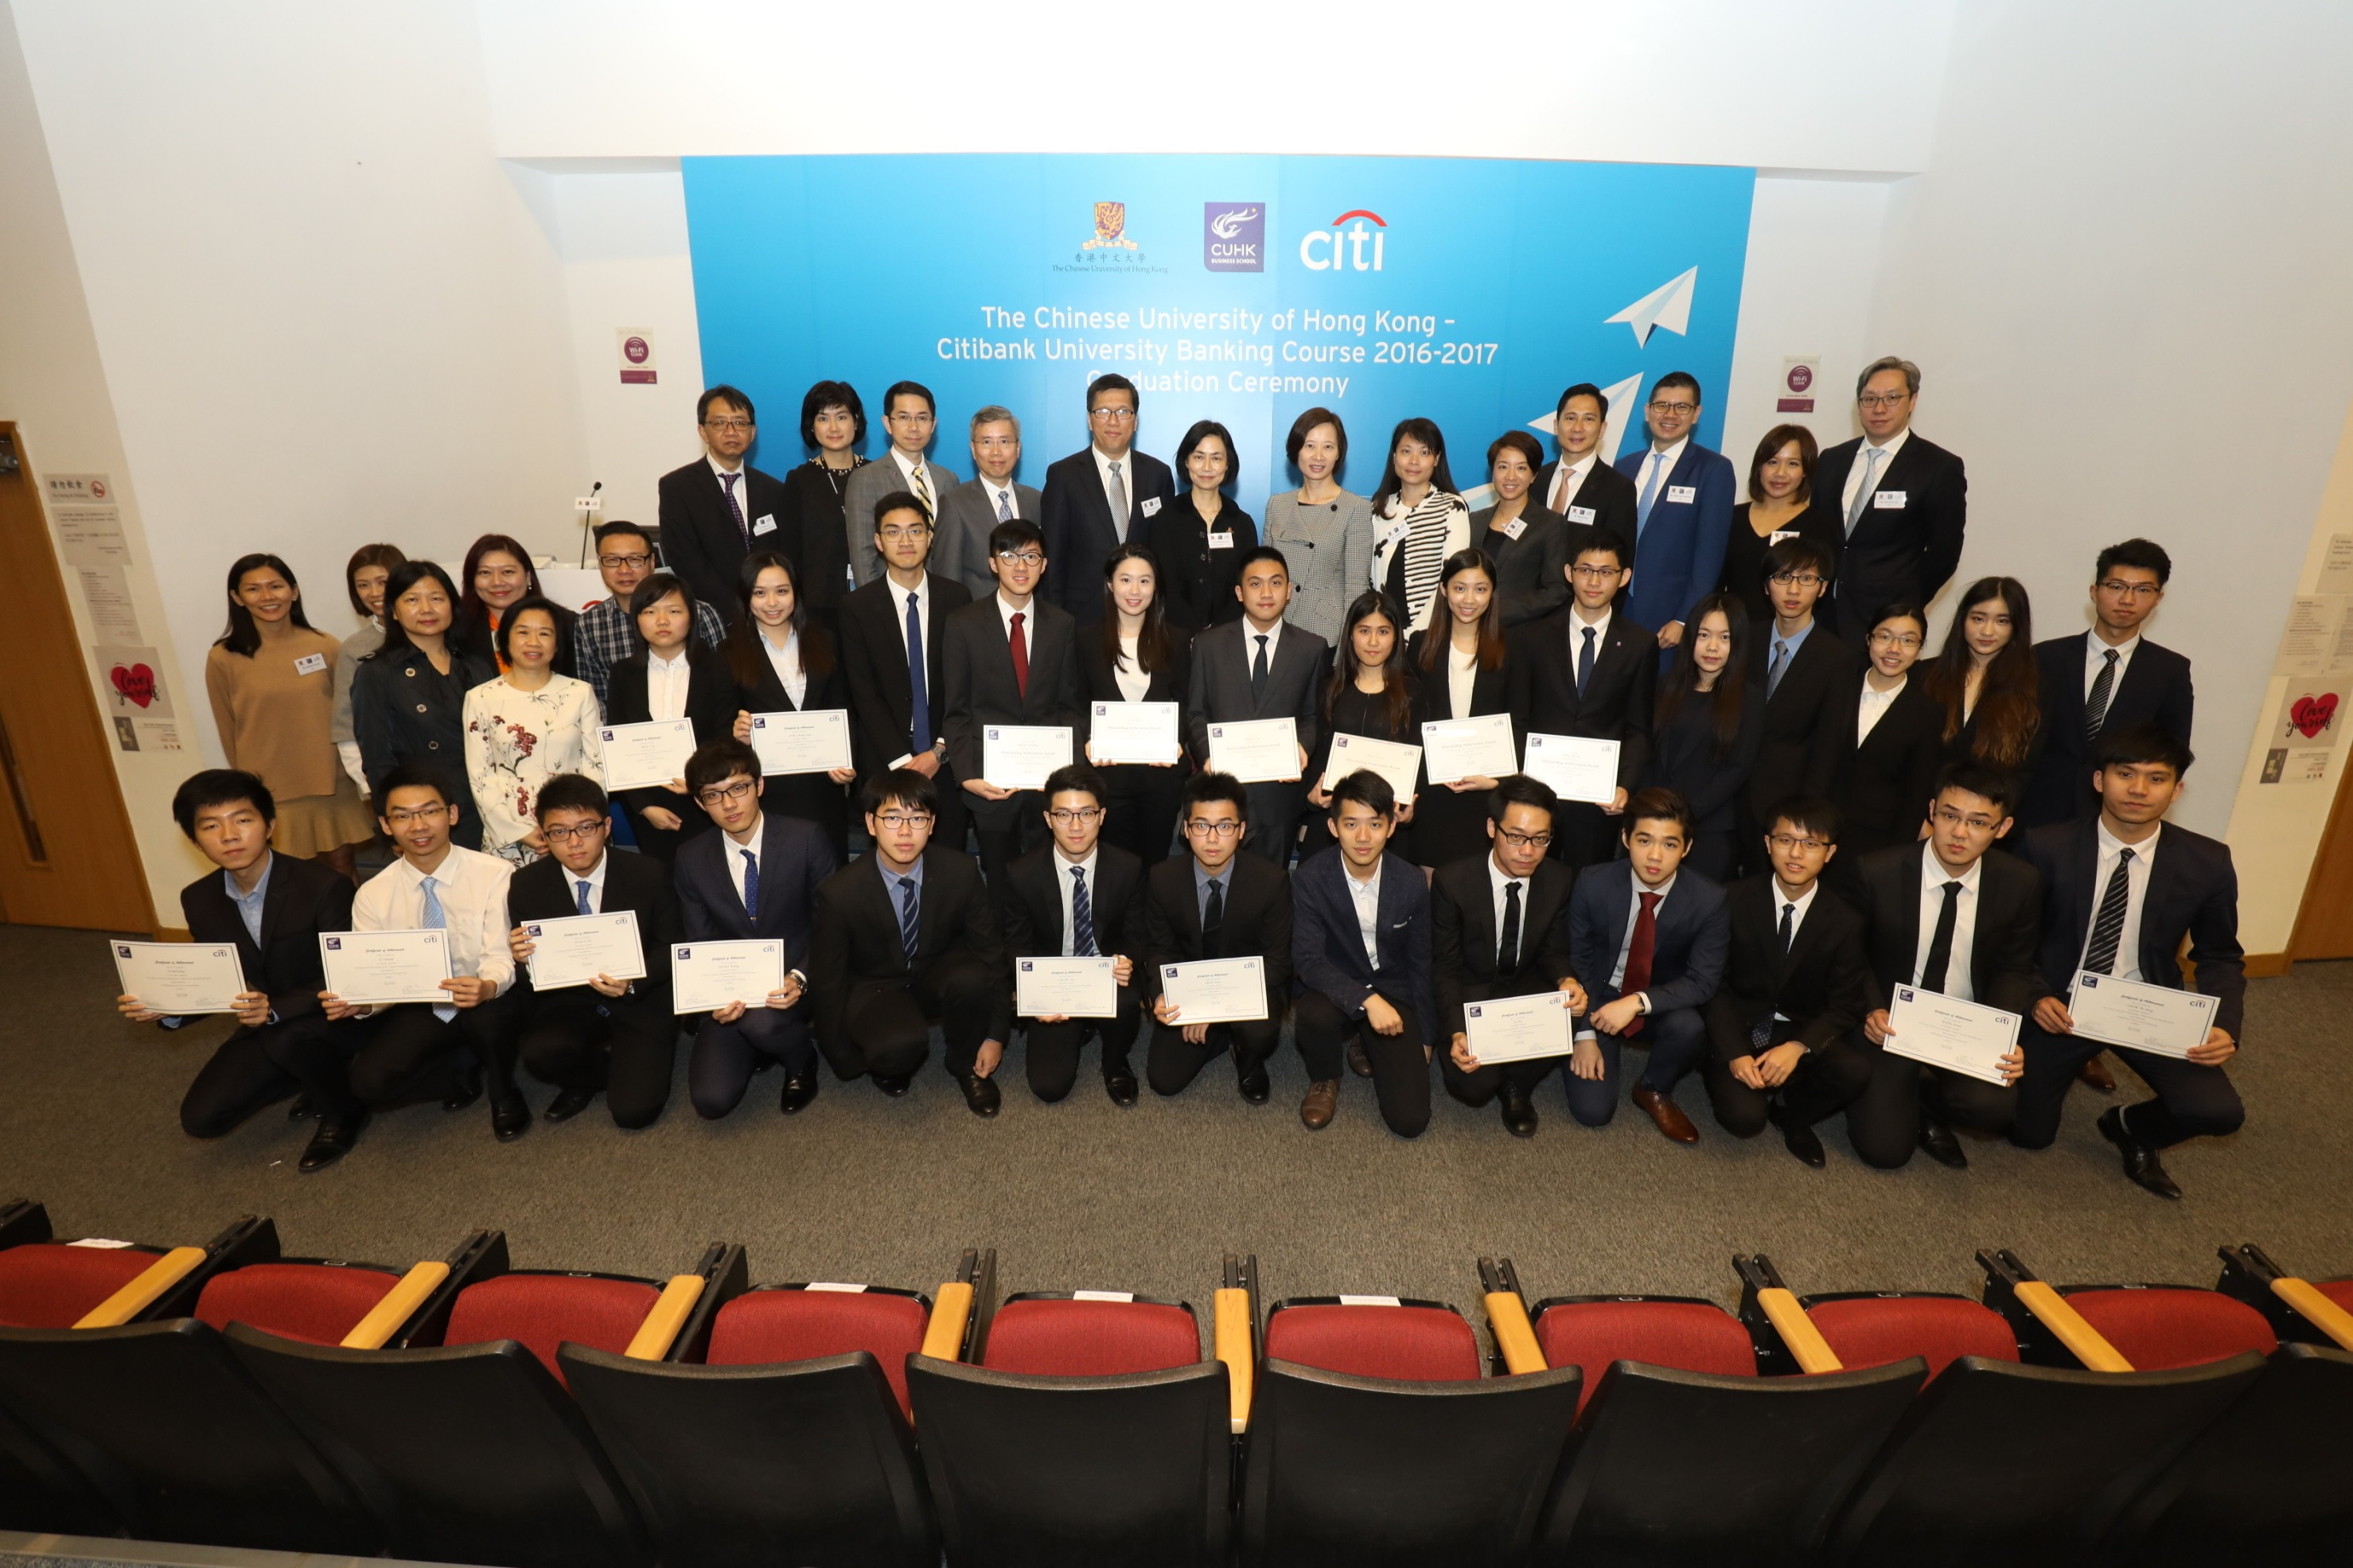 Students from the CUHK Business School are presented with their certificates for completing the three-month program